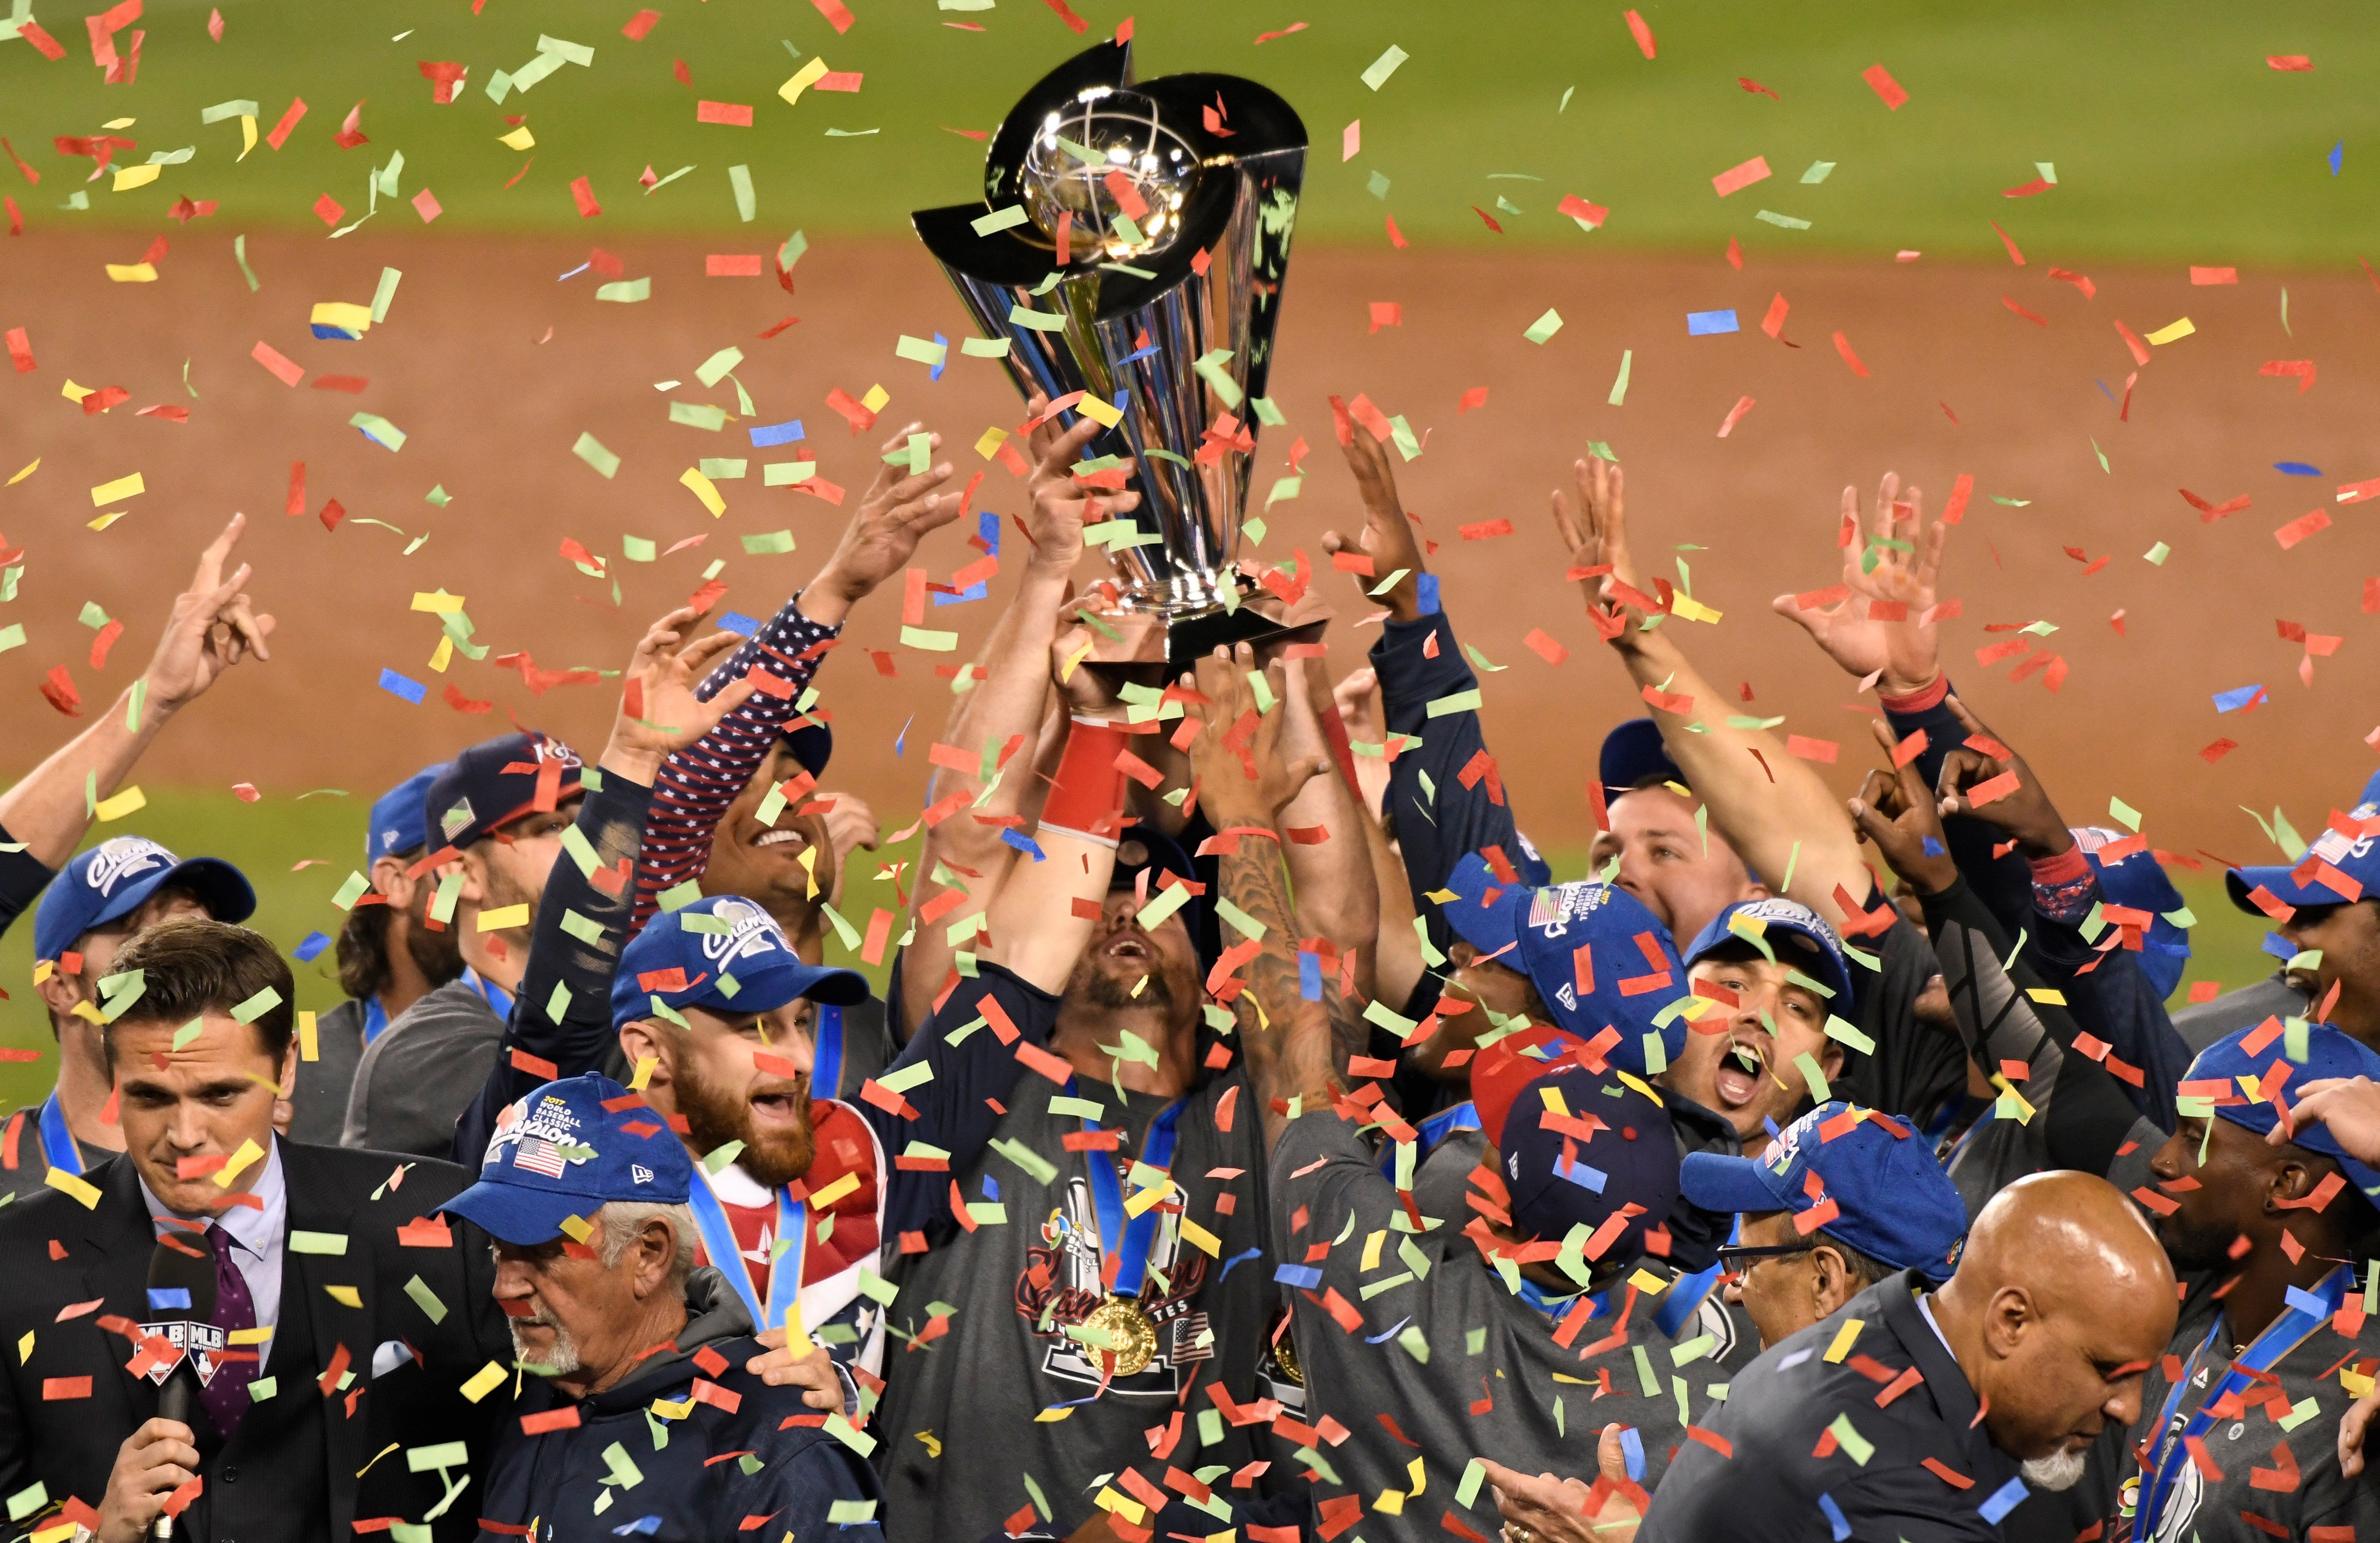 Mar 22, 2017; Los Angeles, CA, USA; United State players hold up the championship trophy after defeating Puerto Rico in the final of the 2017 World Baseball Classic at Dodger Stadium. Mandatory Credit: Robert Hanashiro-USA TODAY Sports